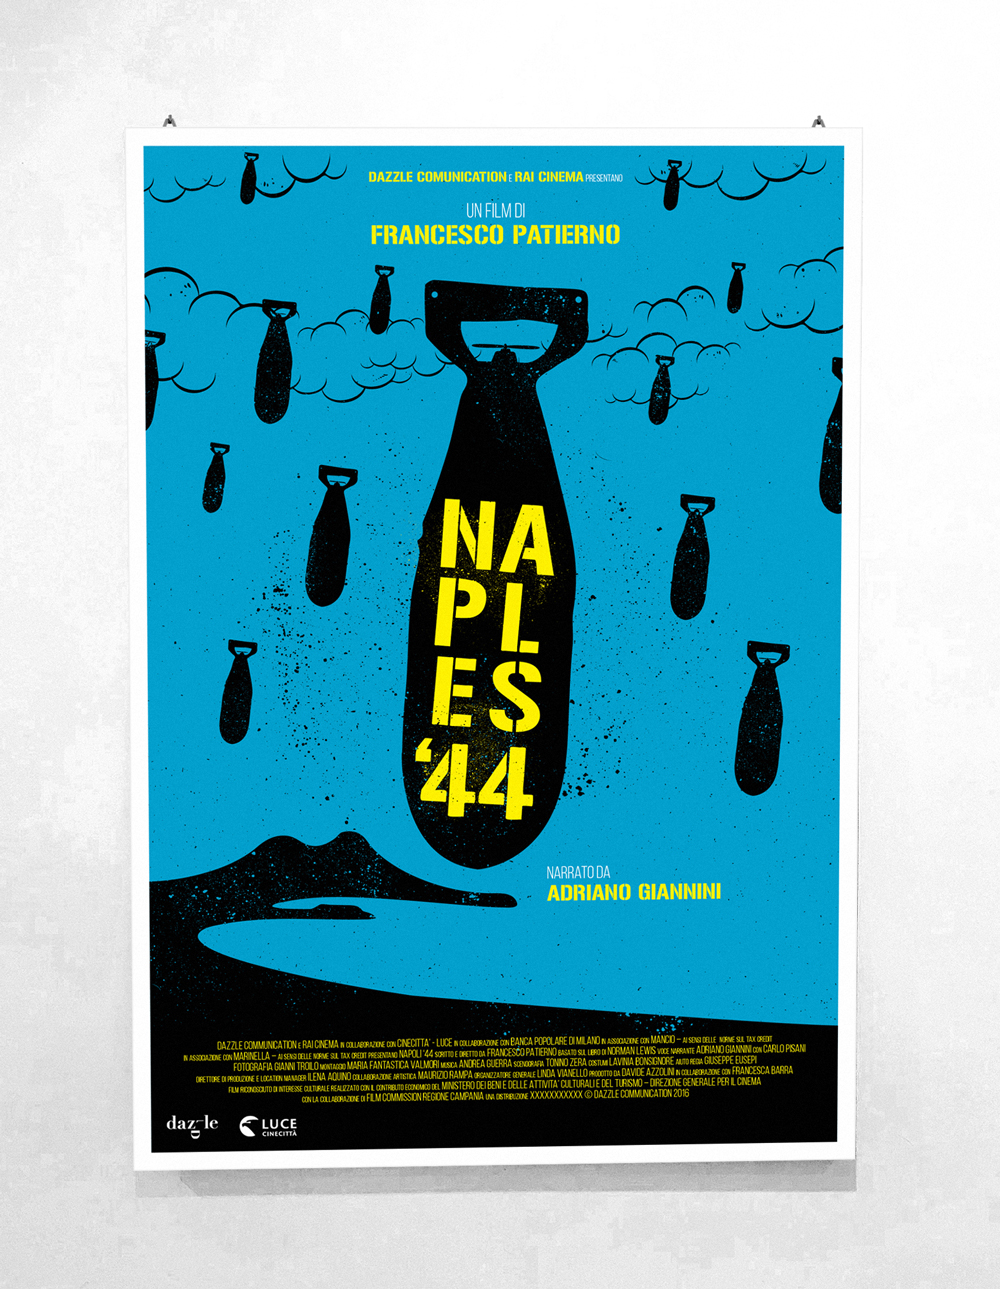 Naples '44 - Directed by Francesco Patierno - Official Italian Poster